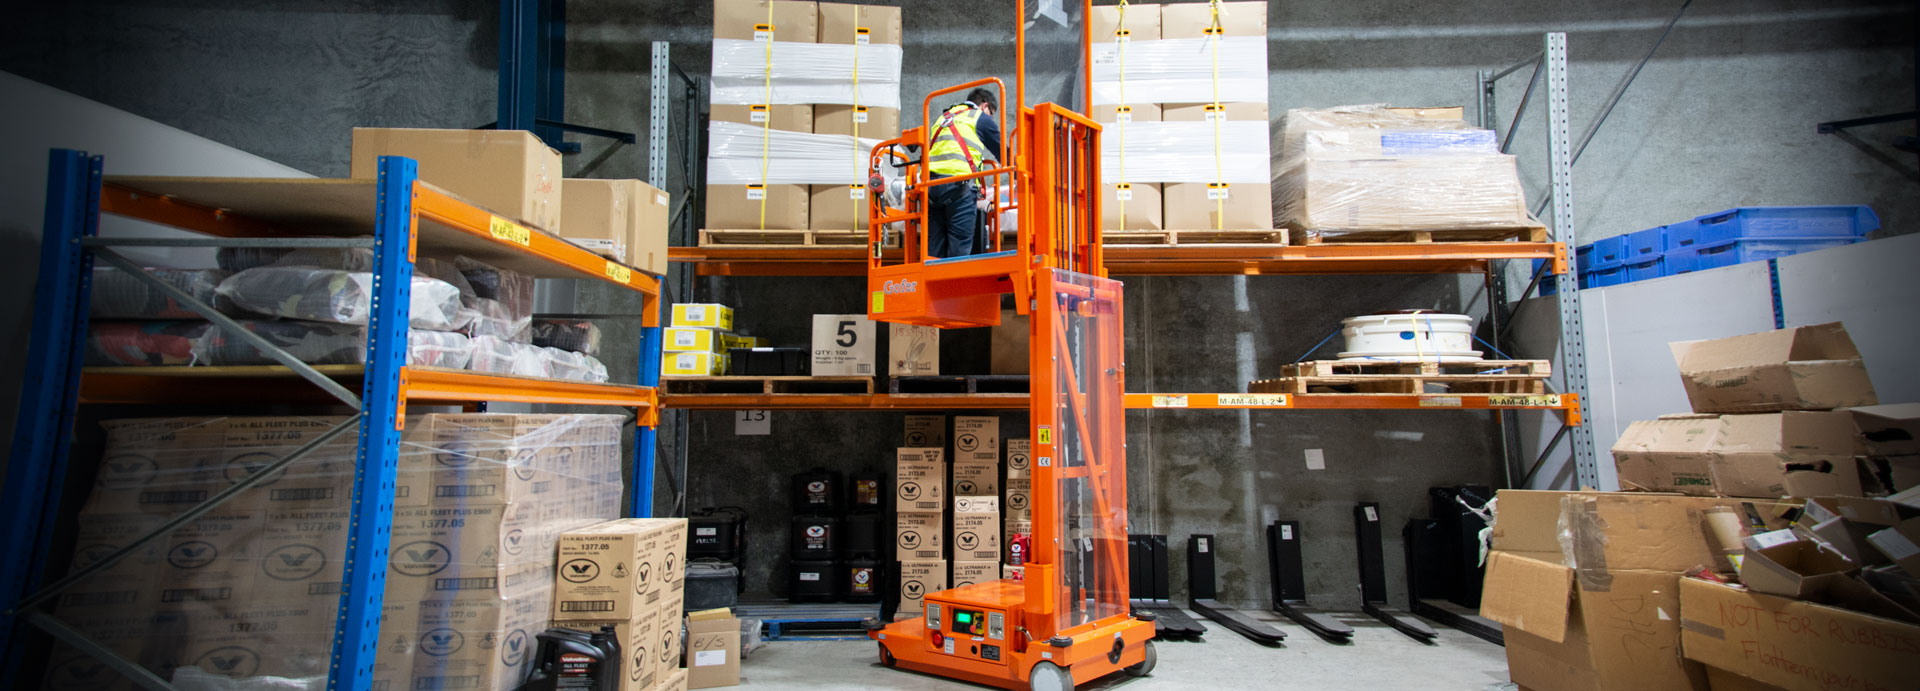 Dingli Gofer TT037 Electric Order Picker